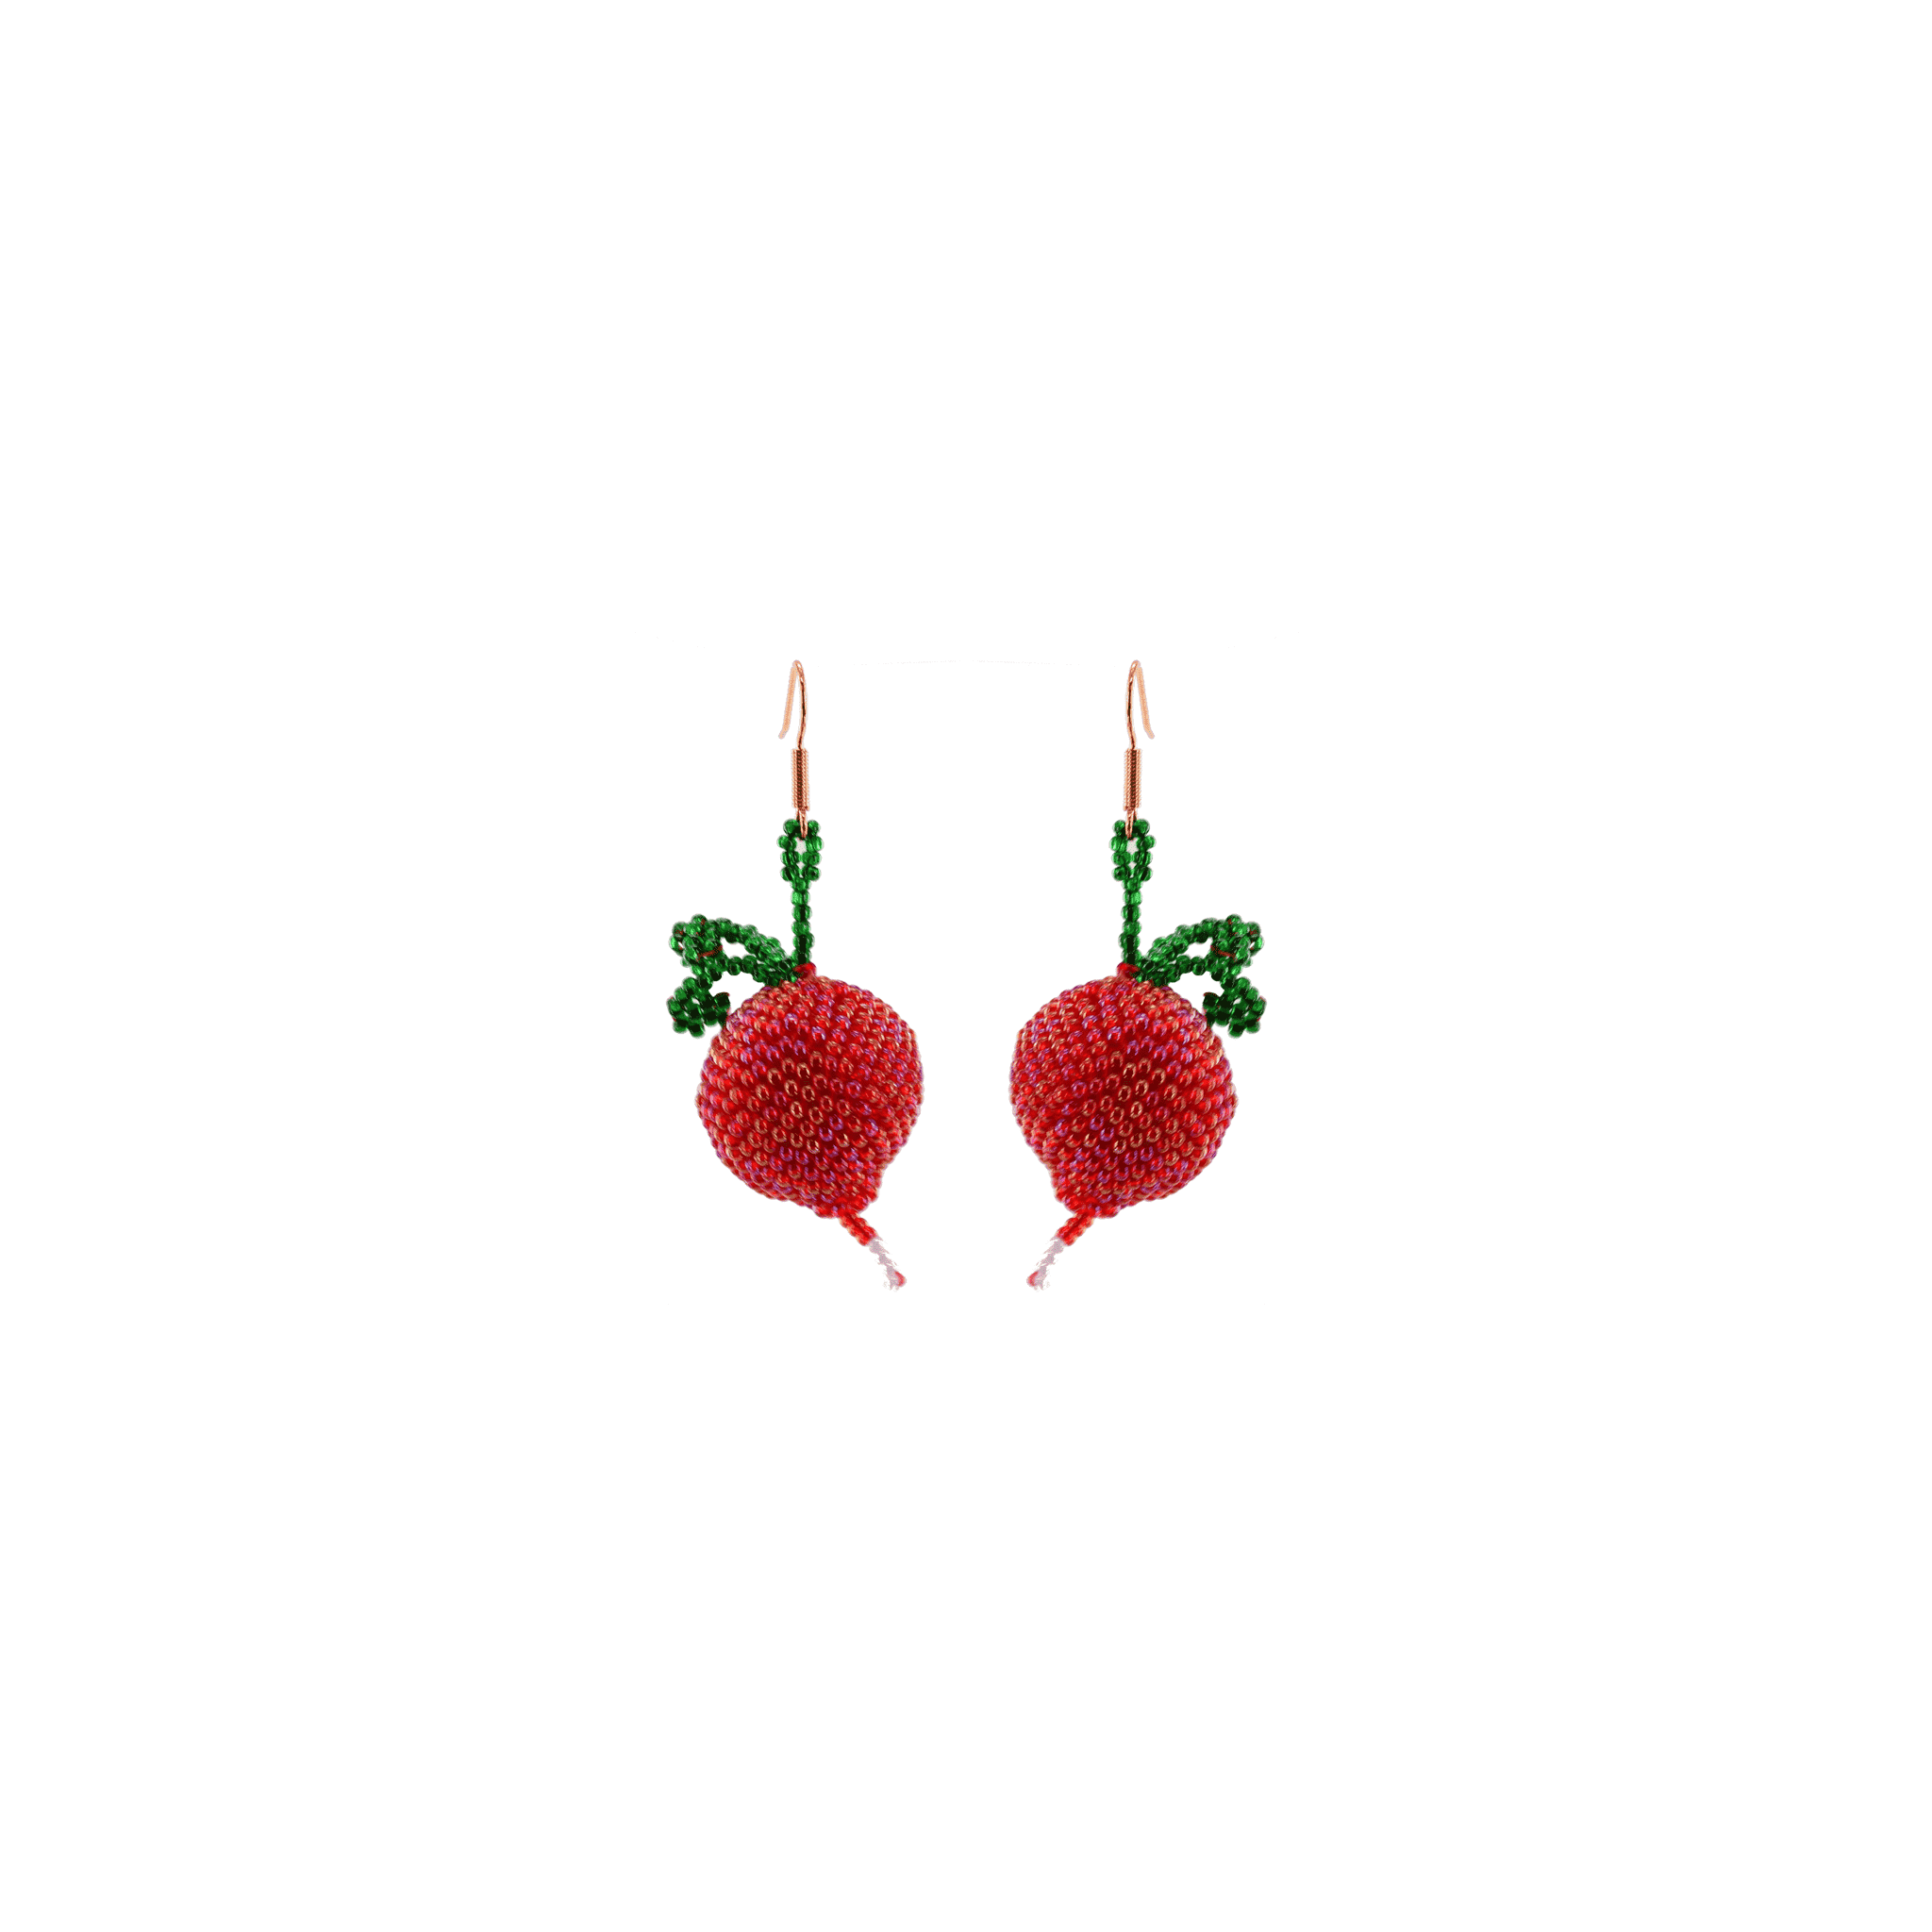 Click to shop - The Red Radish Beaded Earrings